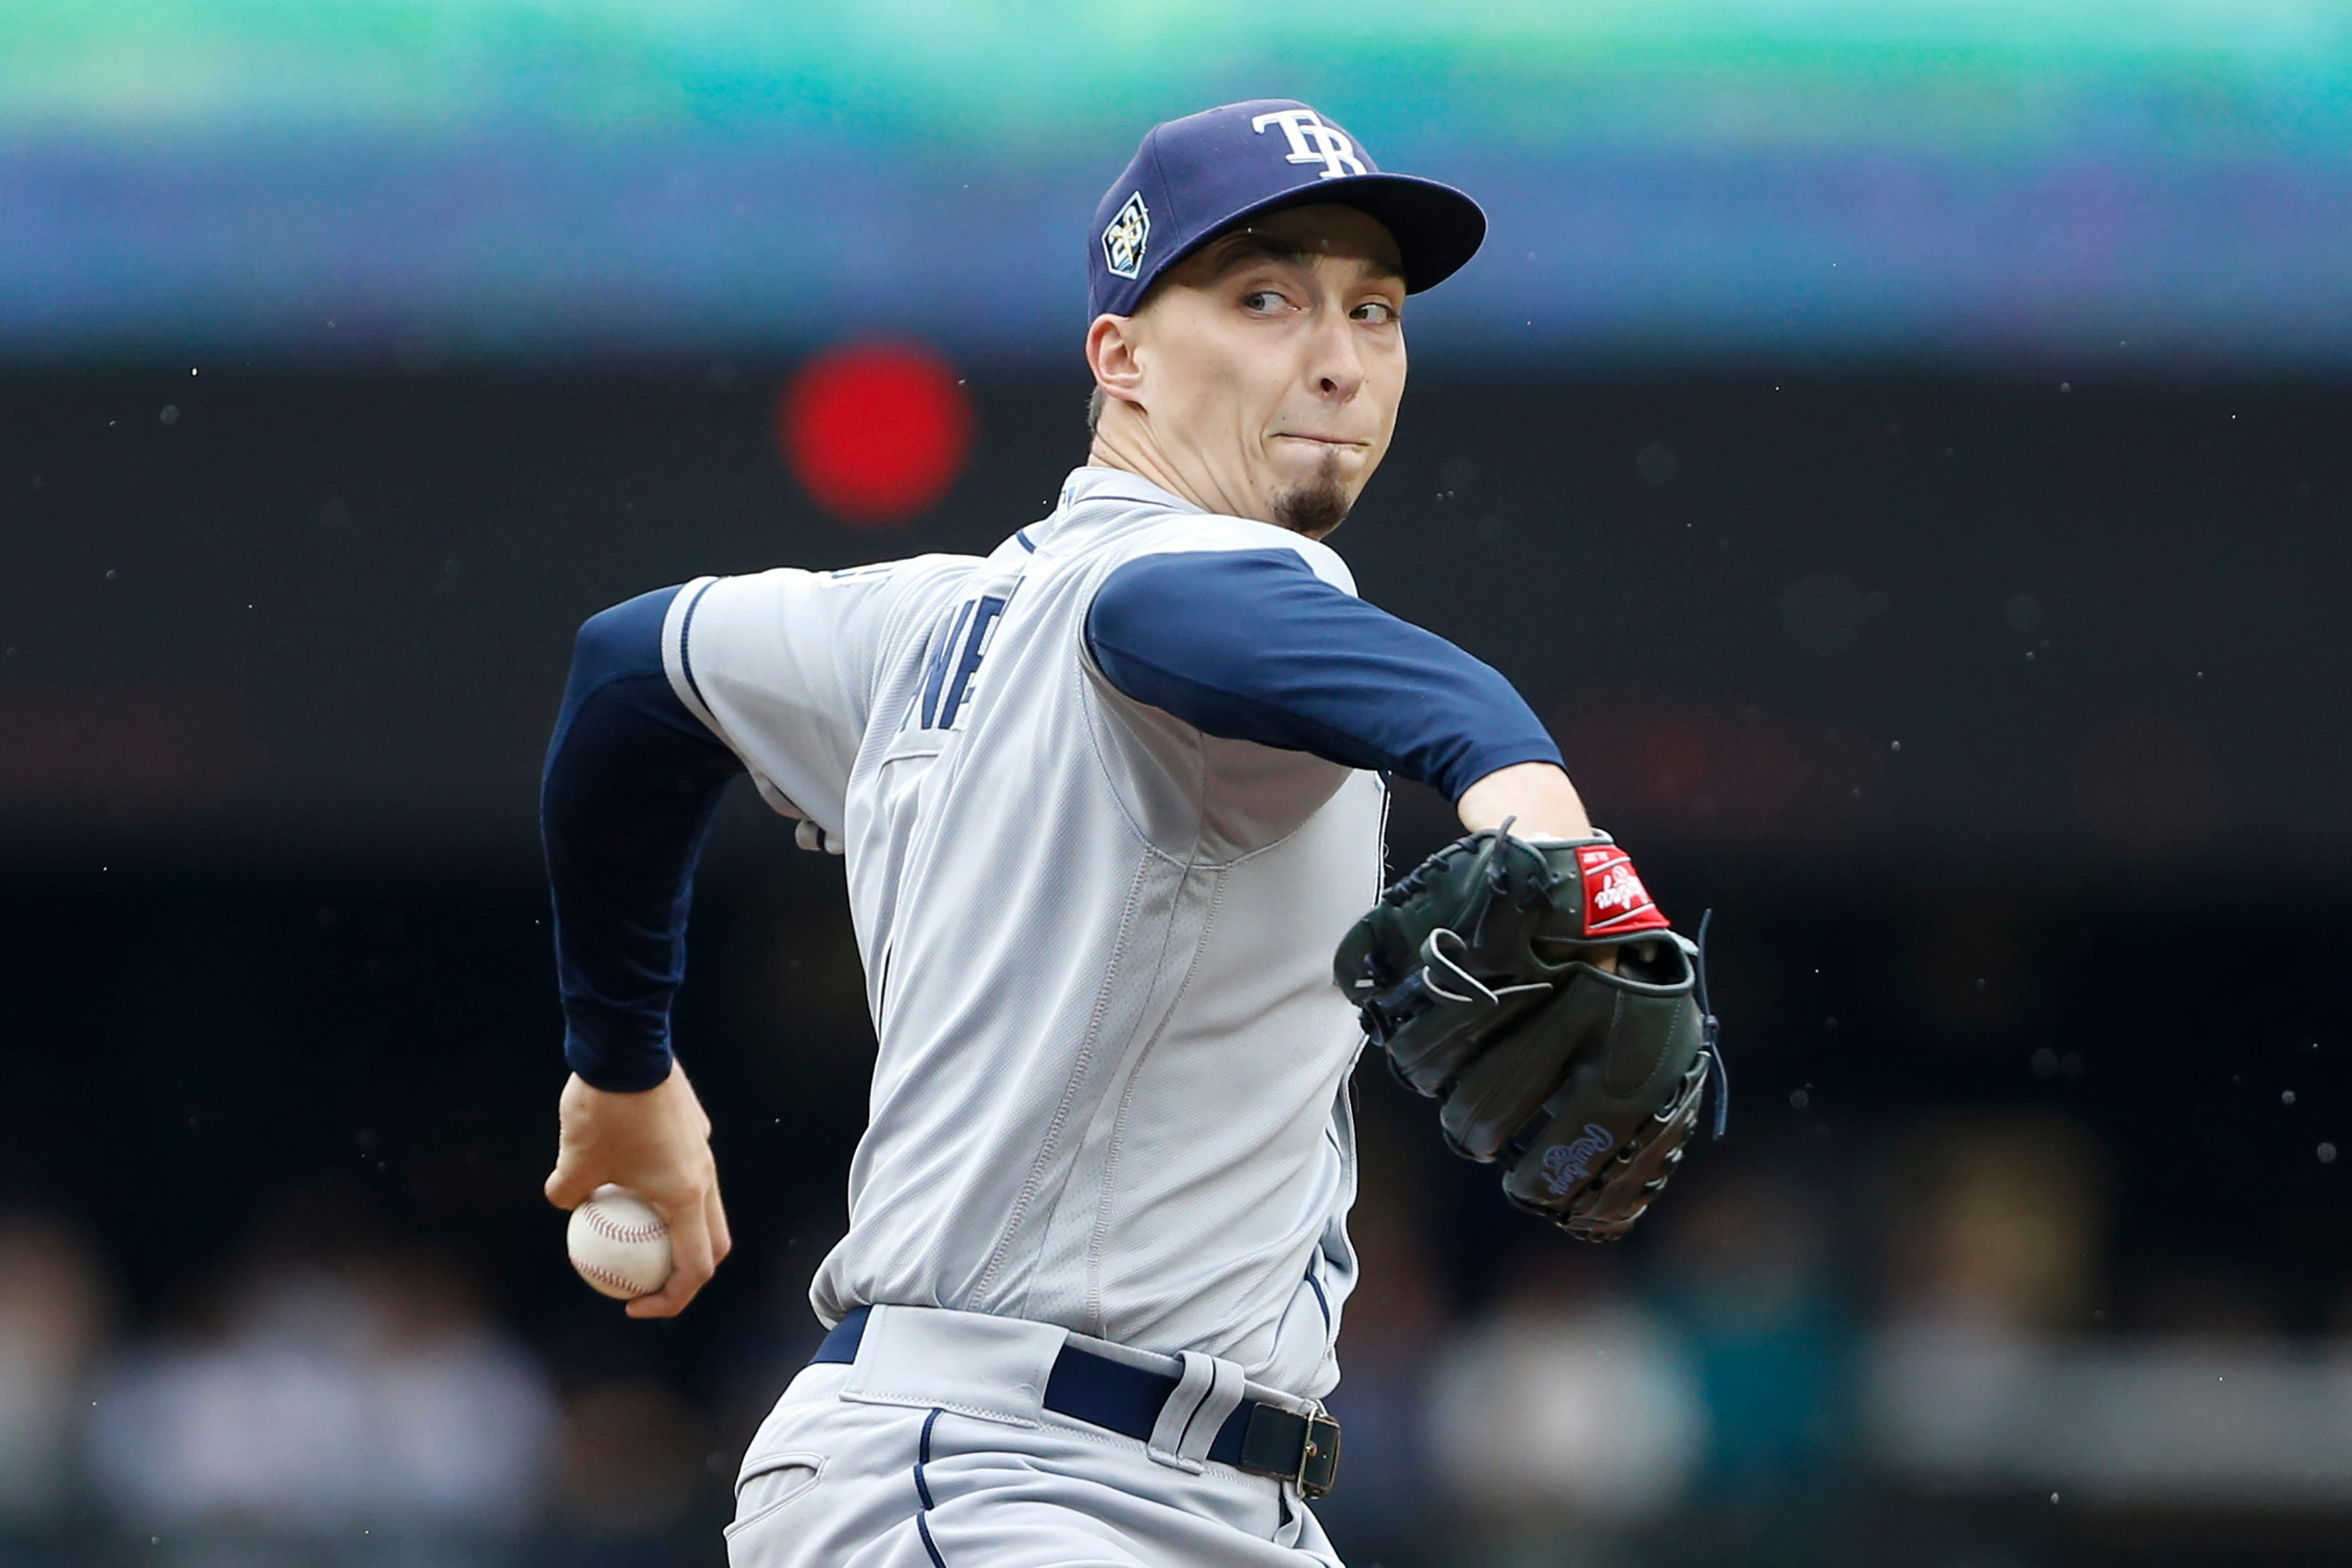 Blake Snell parlays Cy Young Award into long-term deal with Tampa Bay Rays